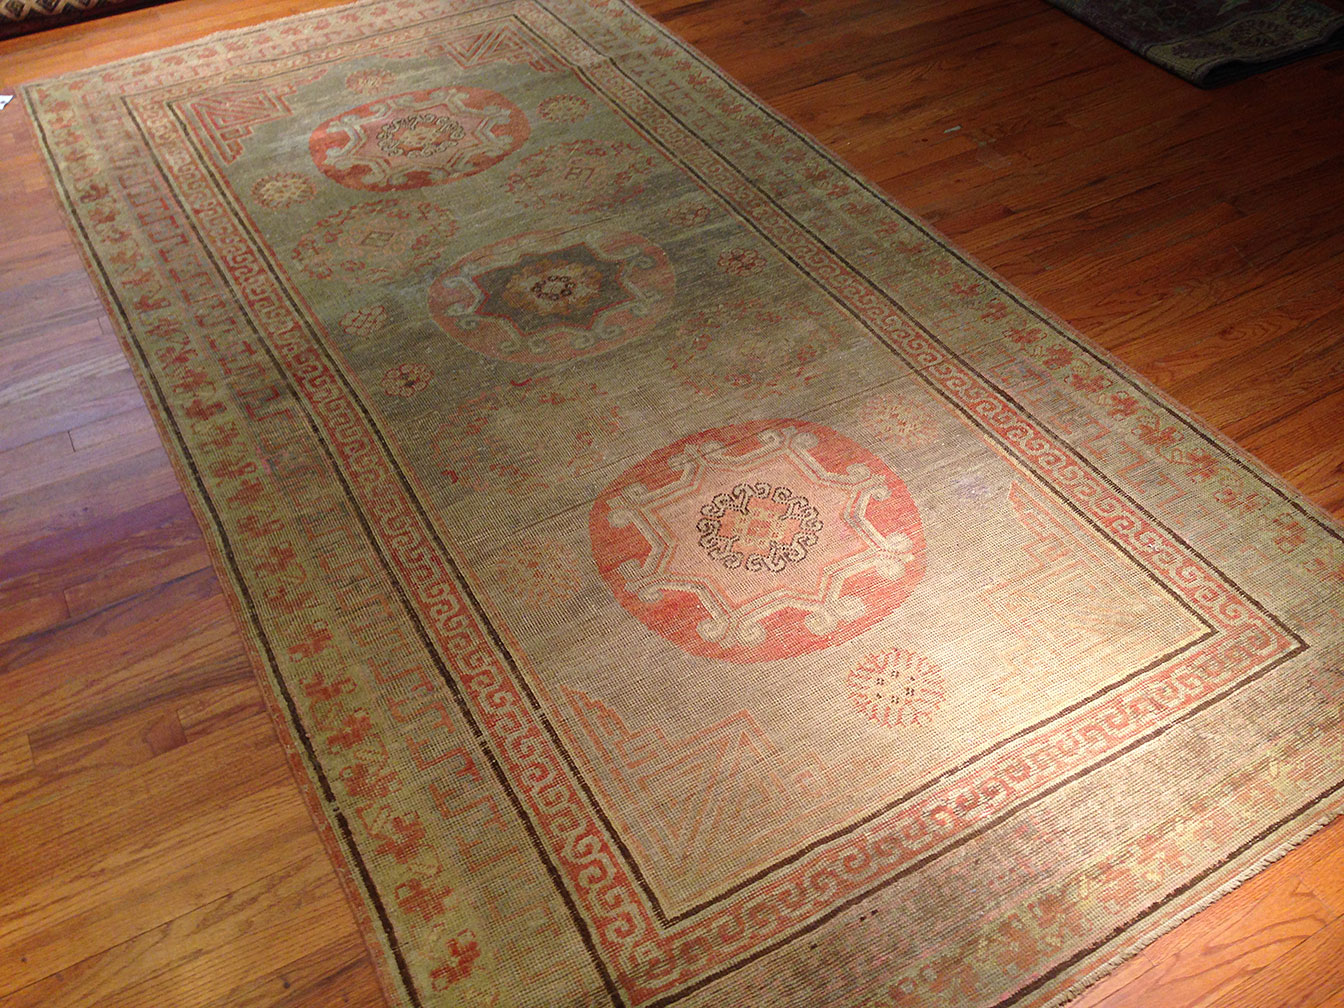 Antique khotan Rug - # 9858